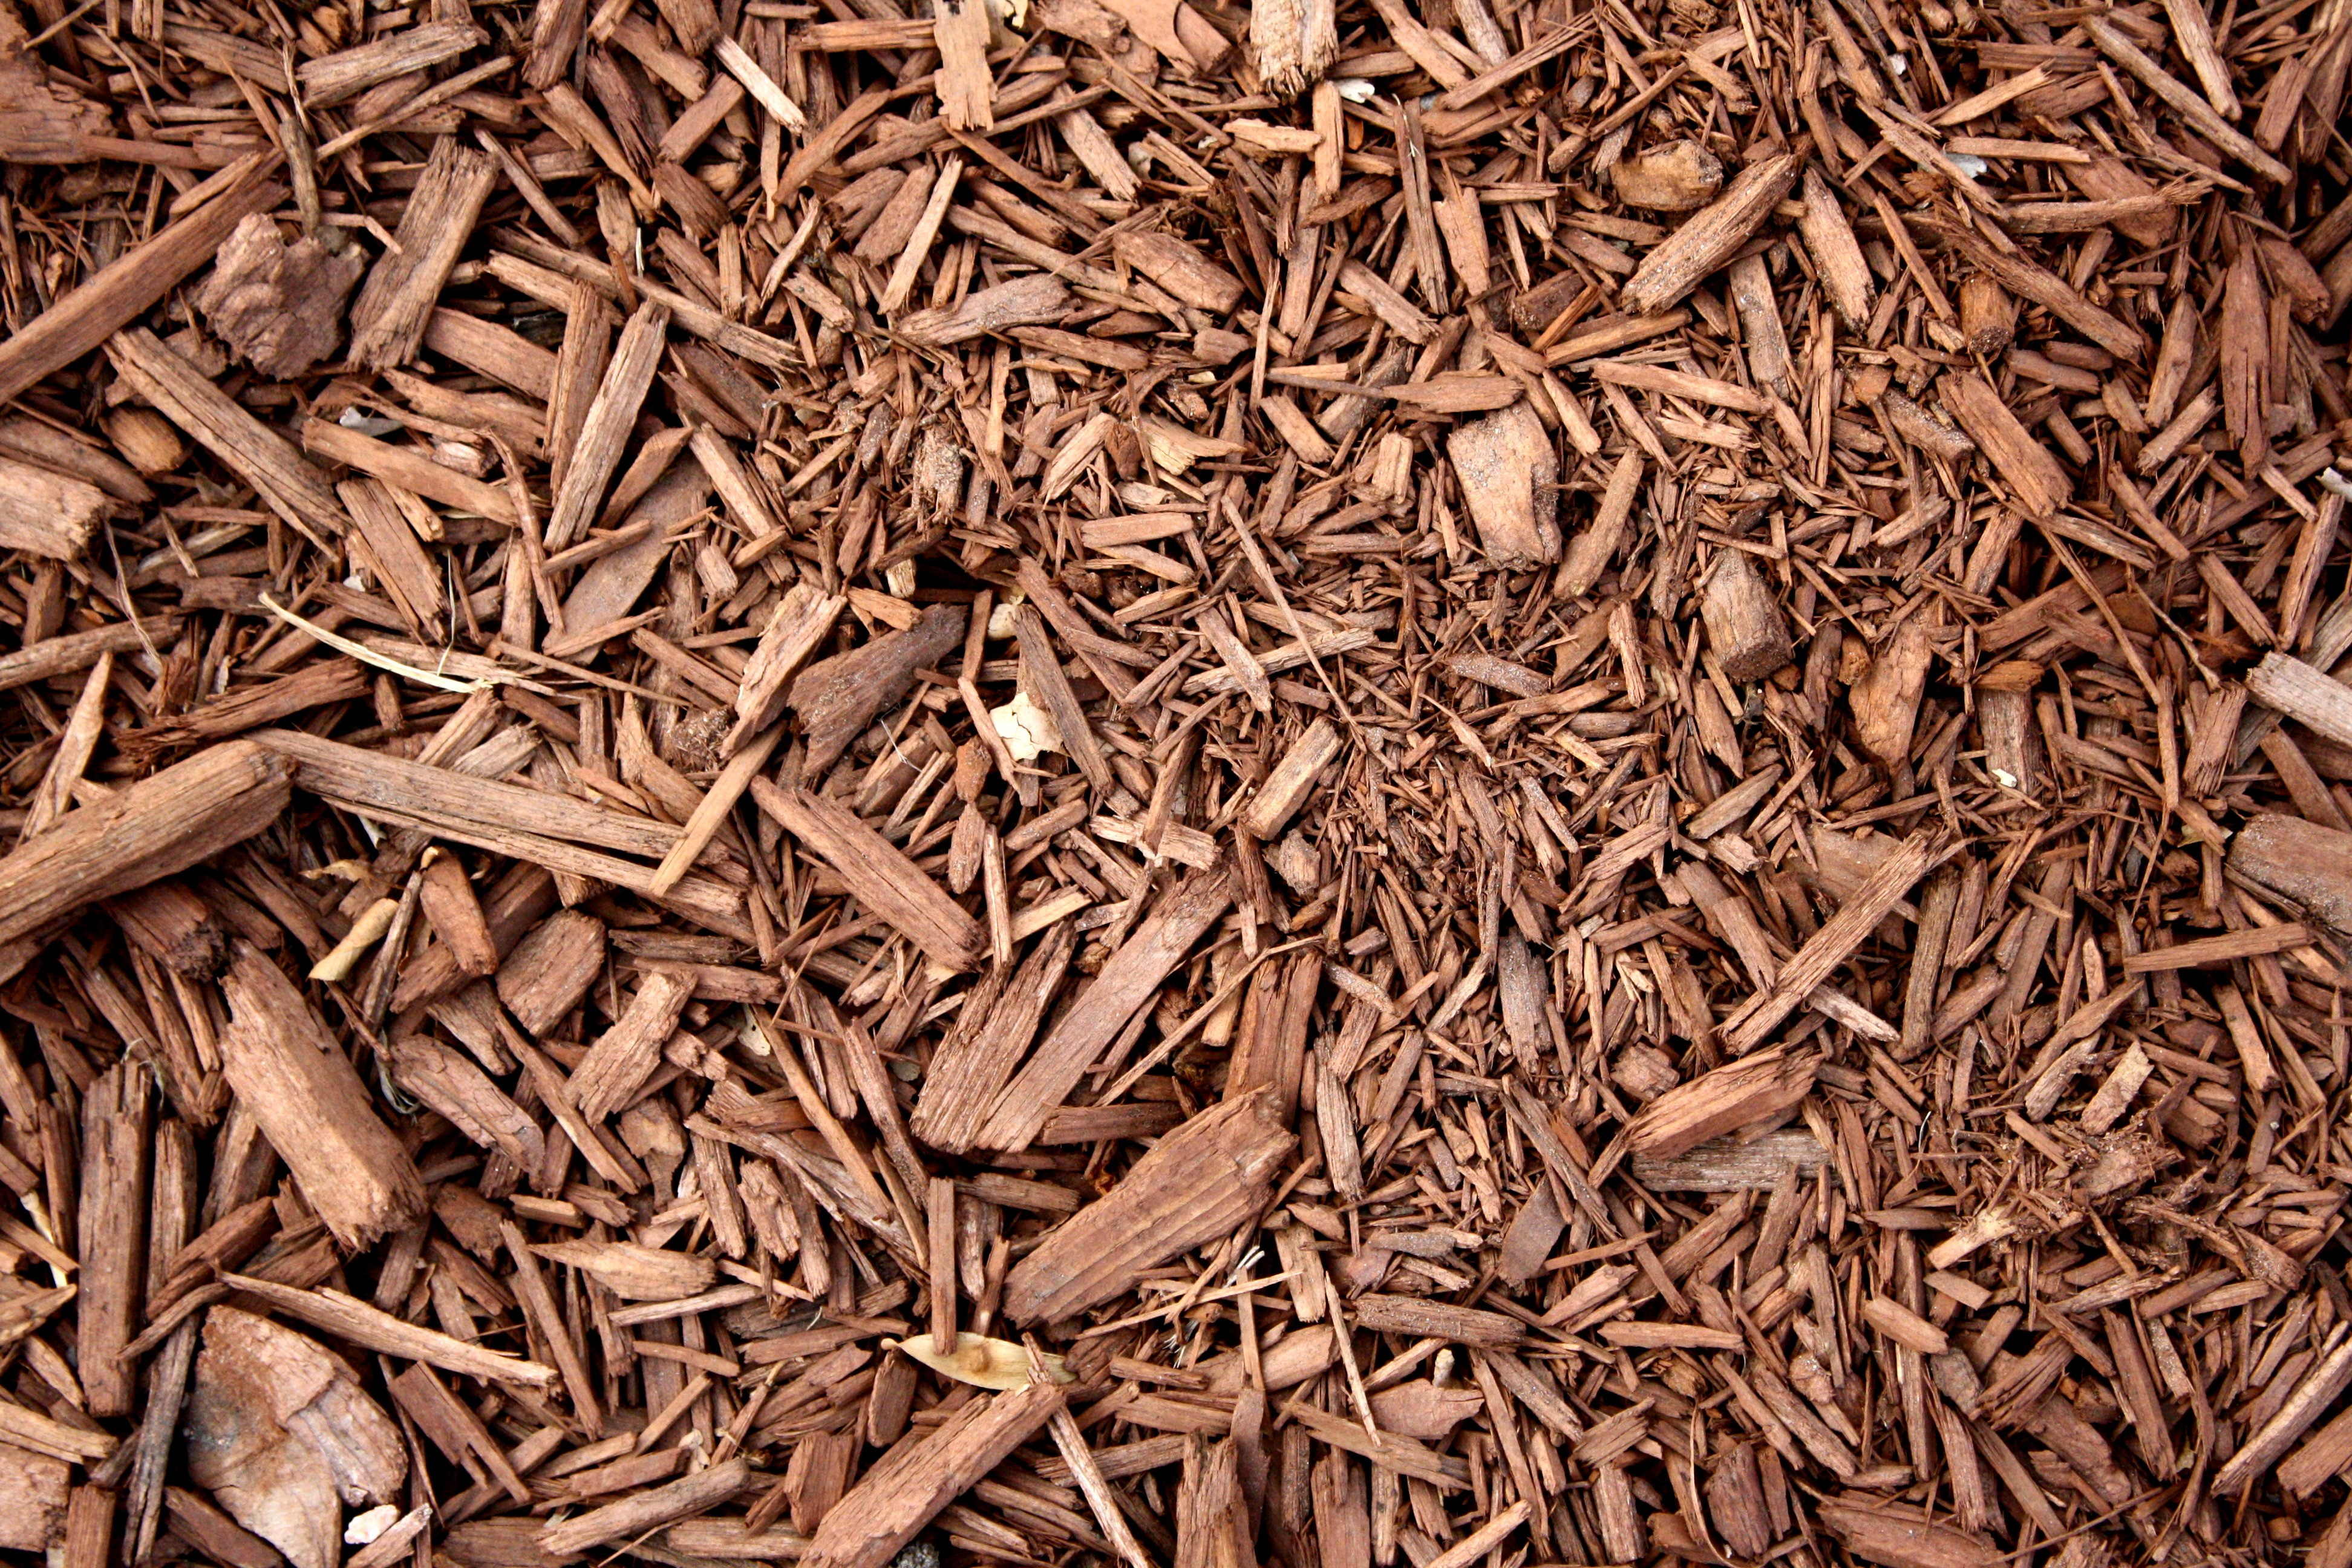 Brown Wood Chip Mulch Texture Picture Photograph Photos 3888x2592